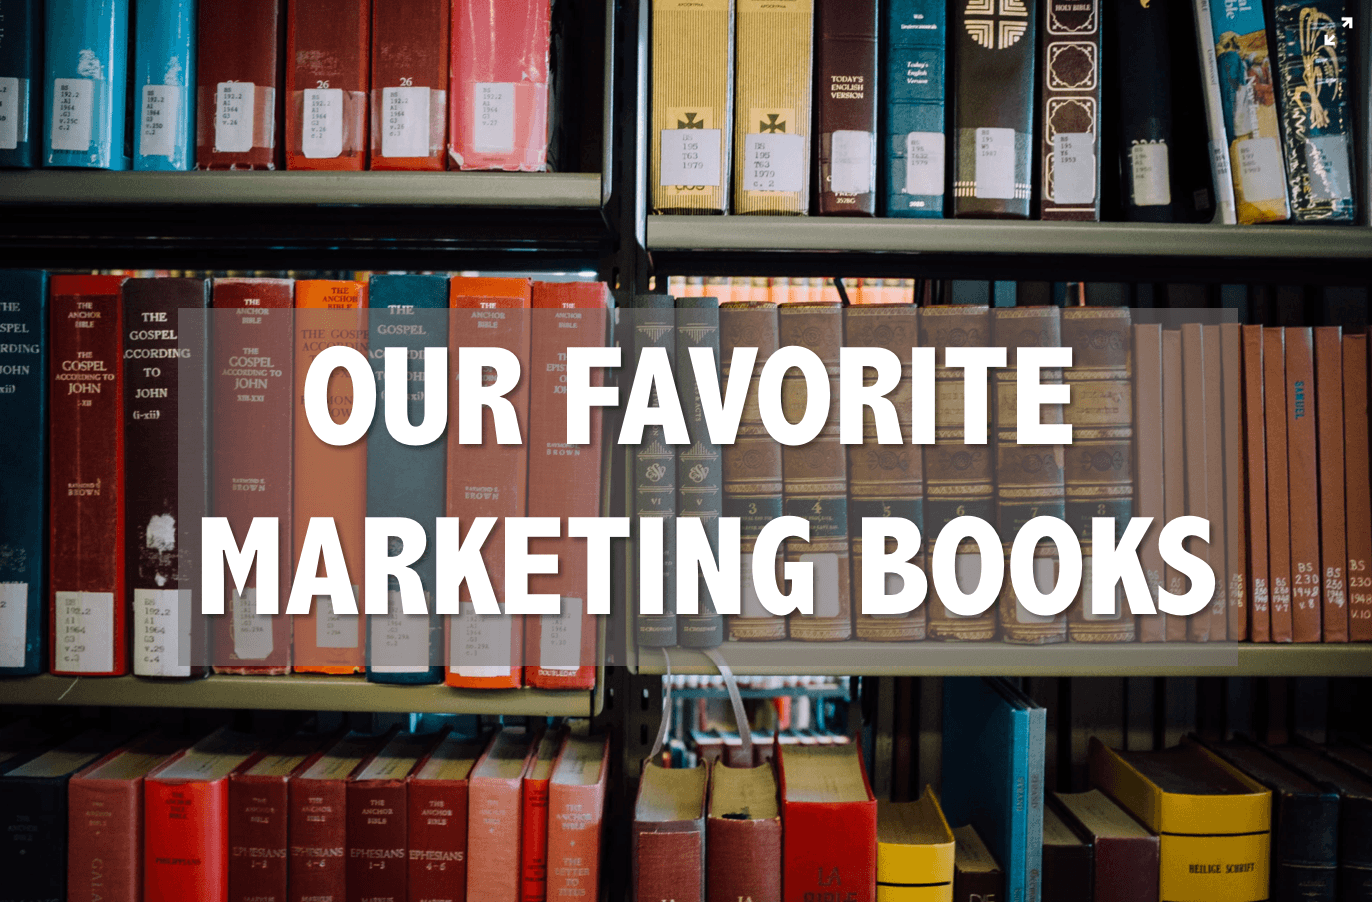 A discussion on our favorite recent marketing books